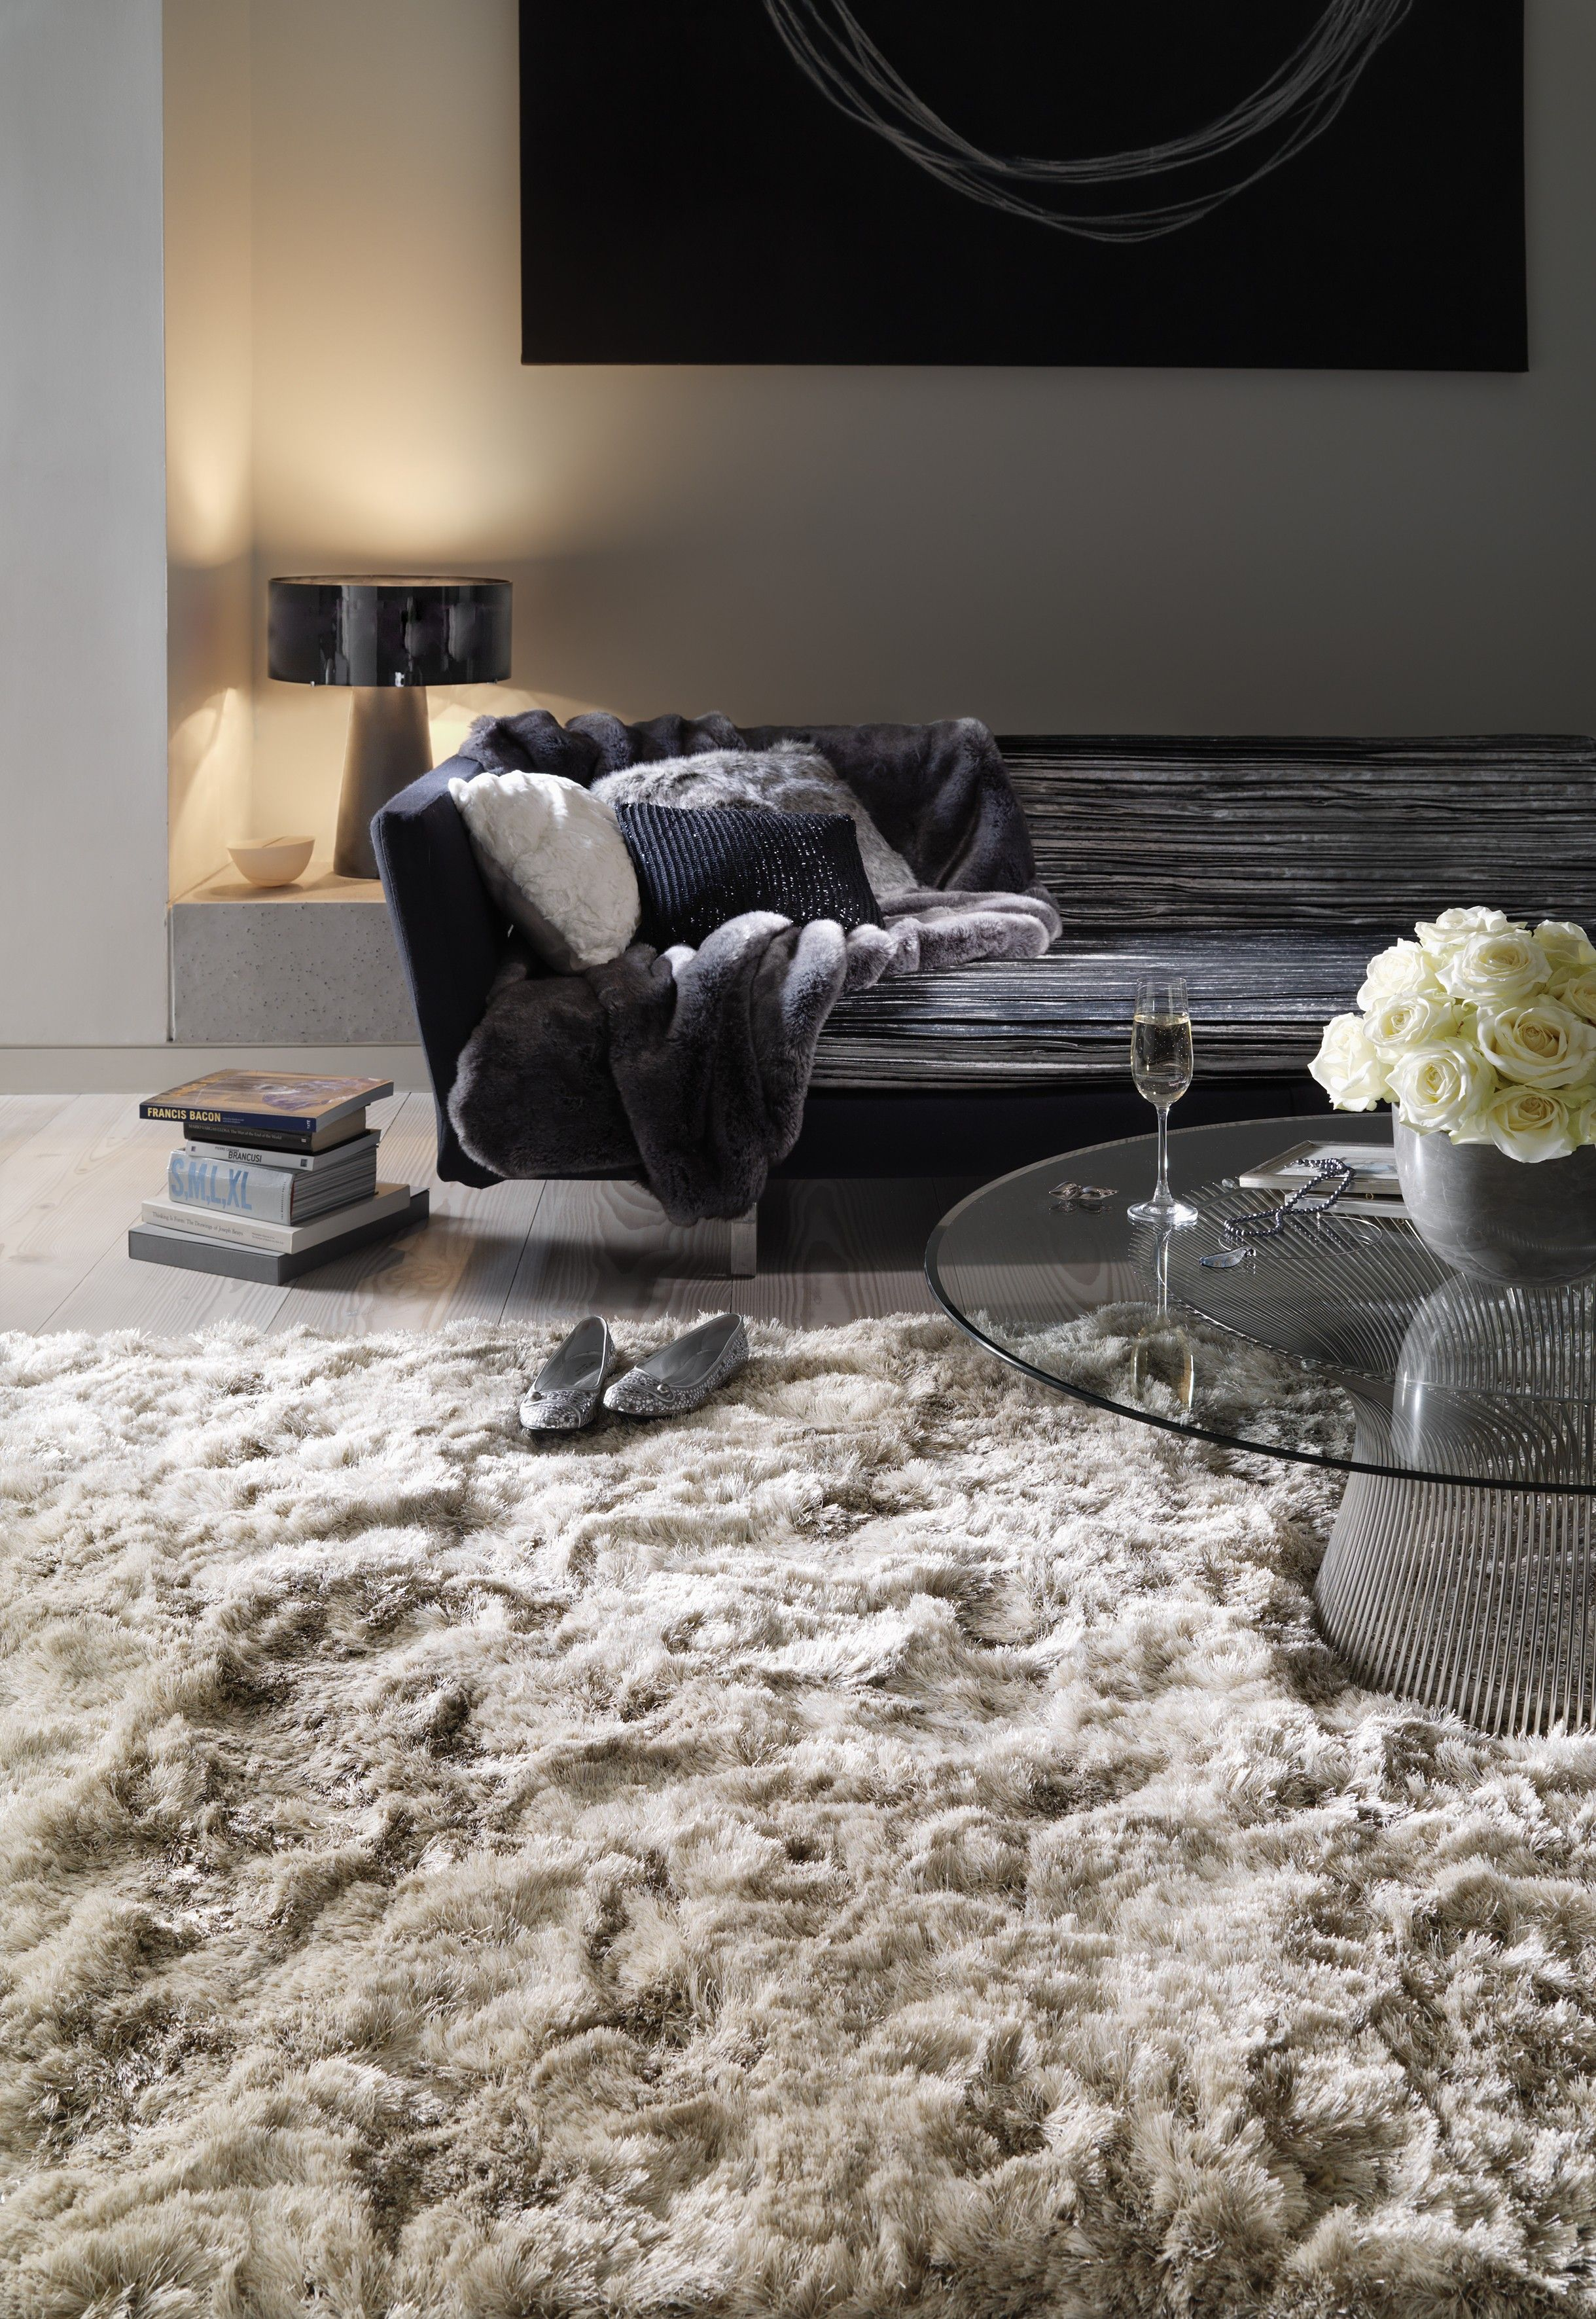 The Fluffy Beige Rug Is A Warm And Soft Essential For Cold Winters